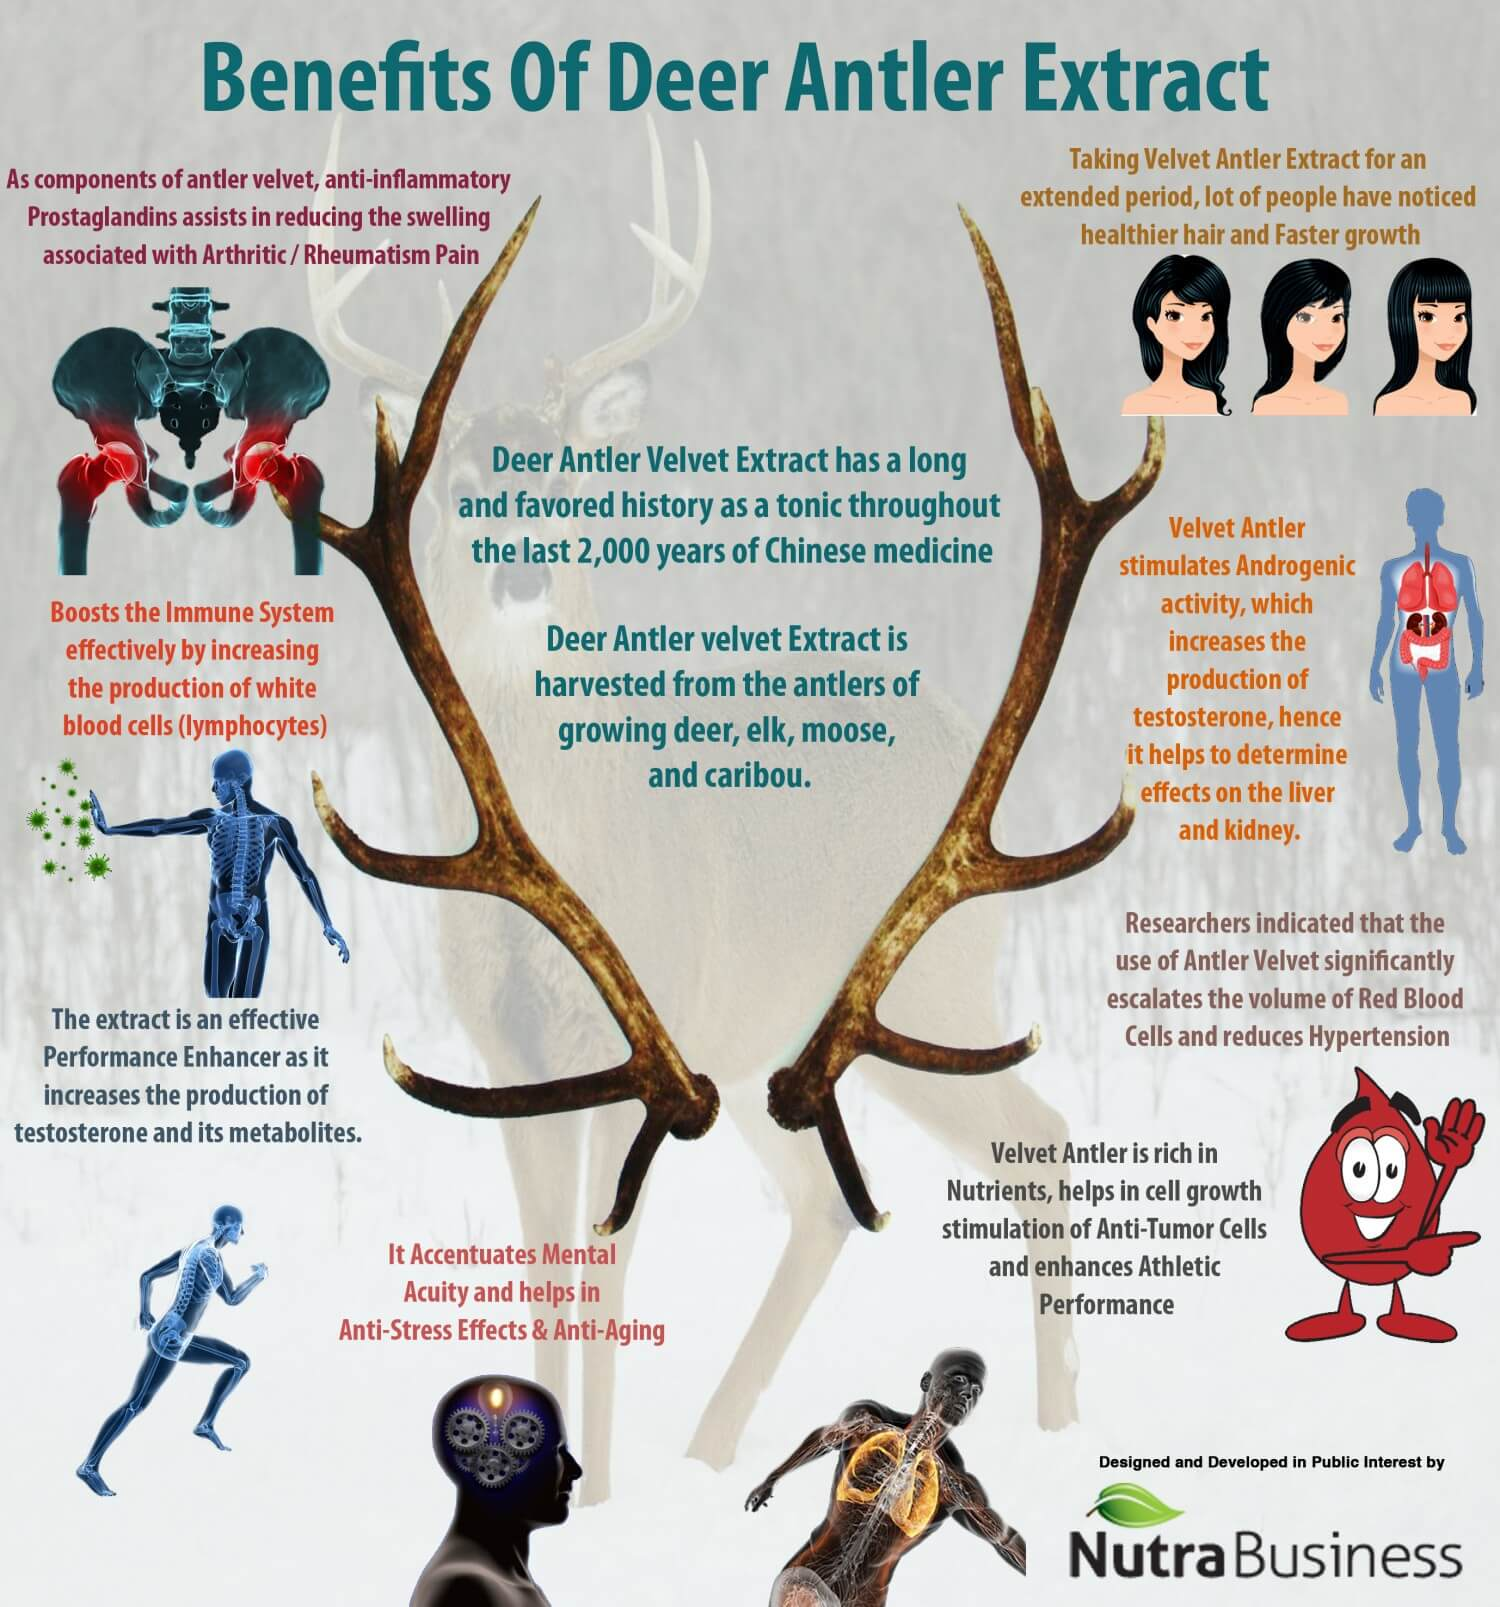 The Benefits of Deer Antler Velvet